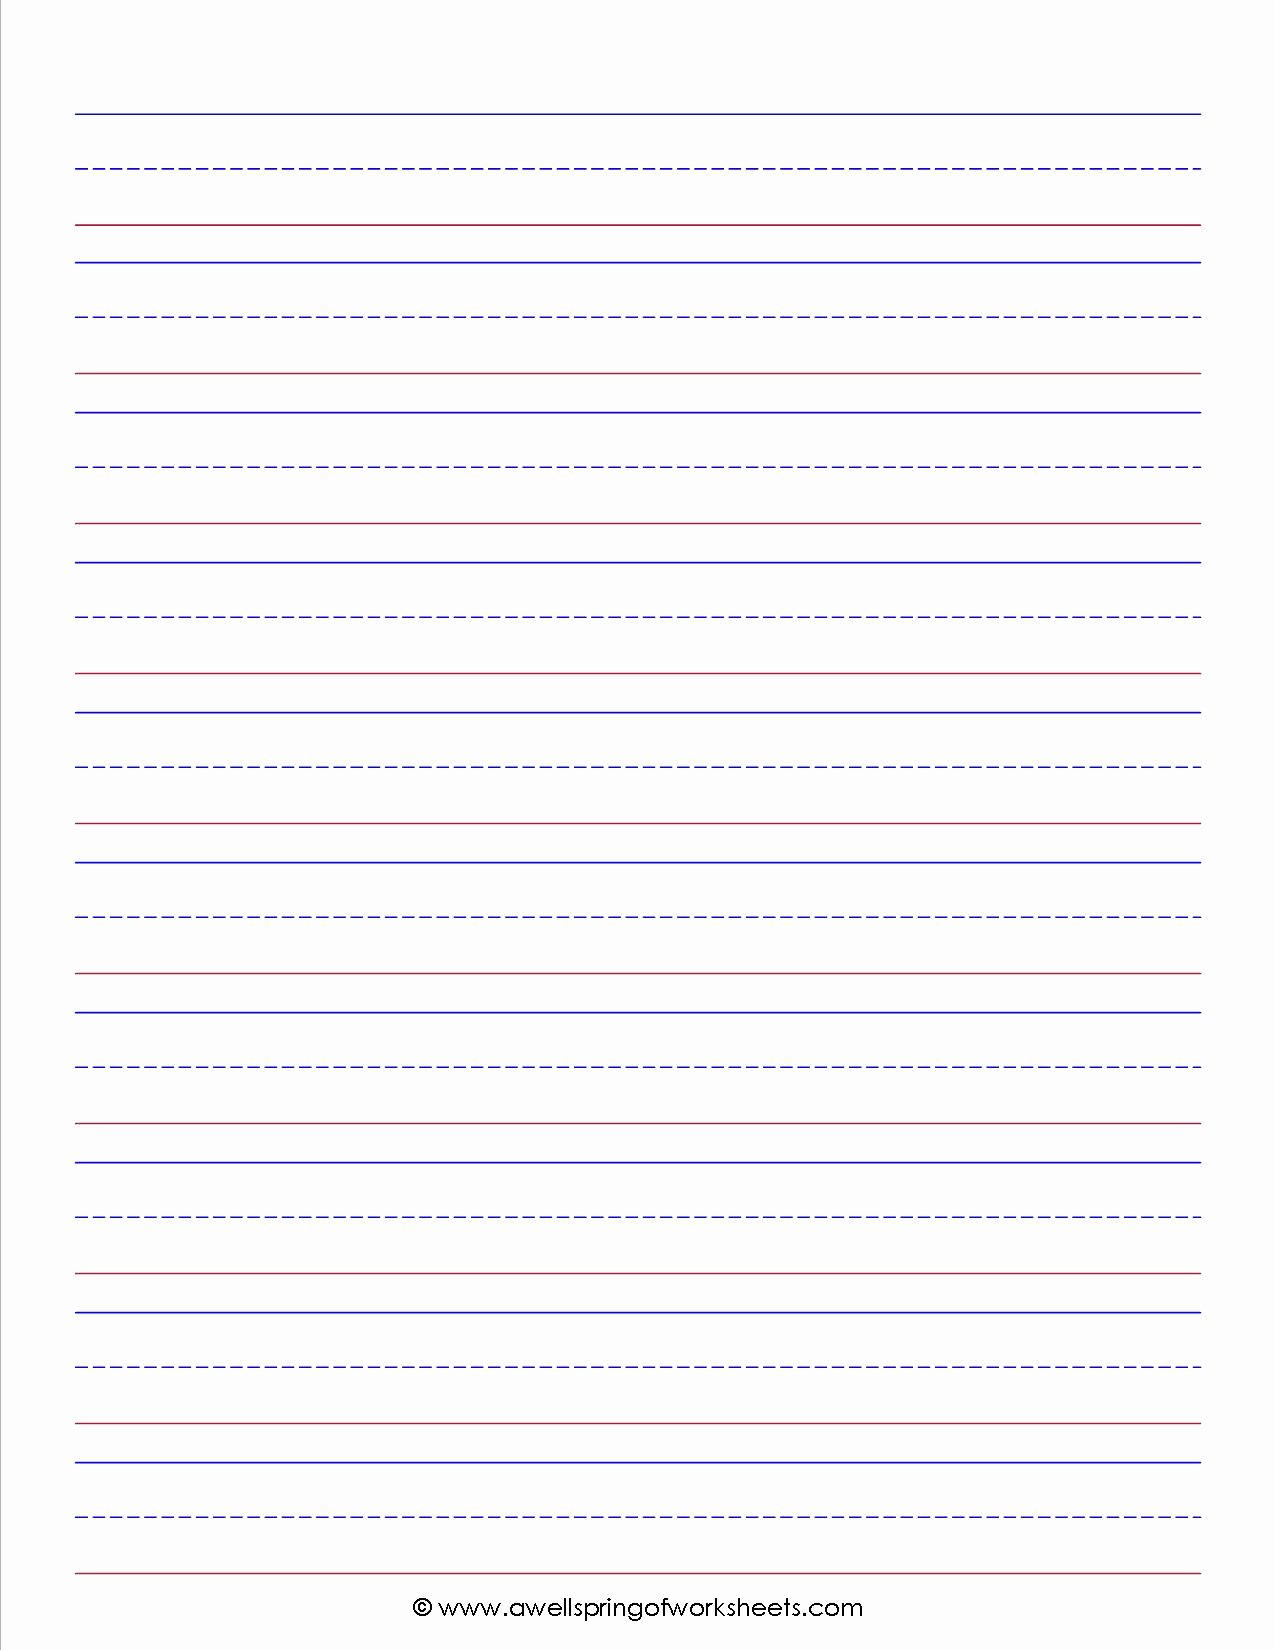 Free Lined Paper for Kindergarten Beautiful Best S Of Primary Paper Template Kindergarten Lined